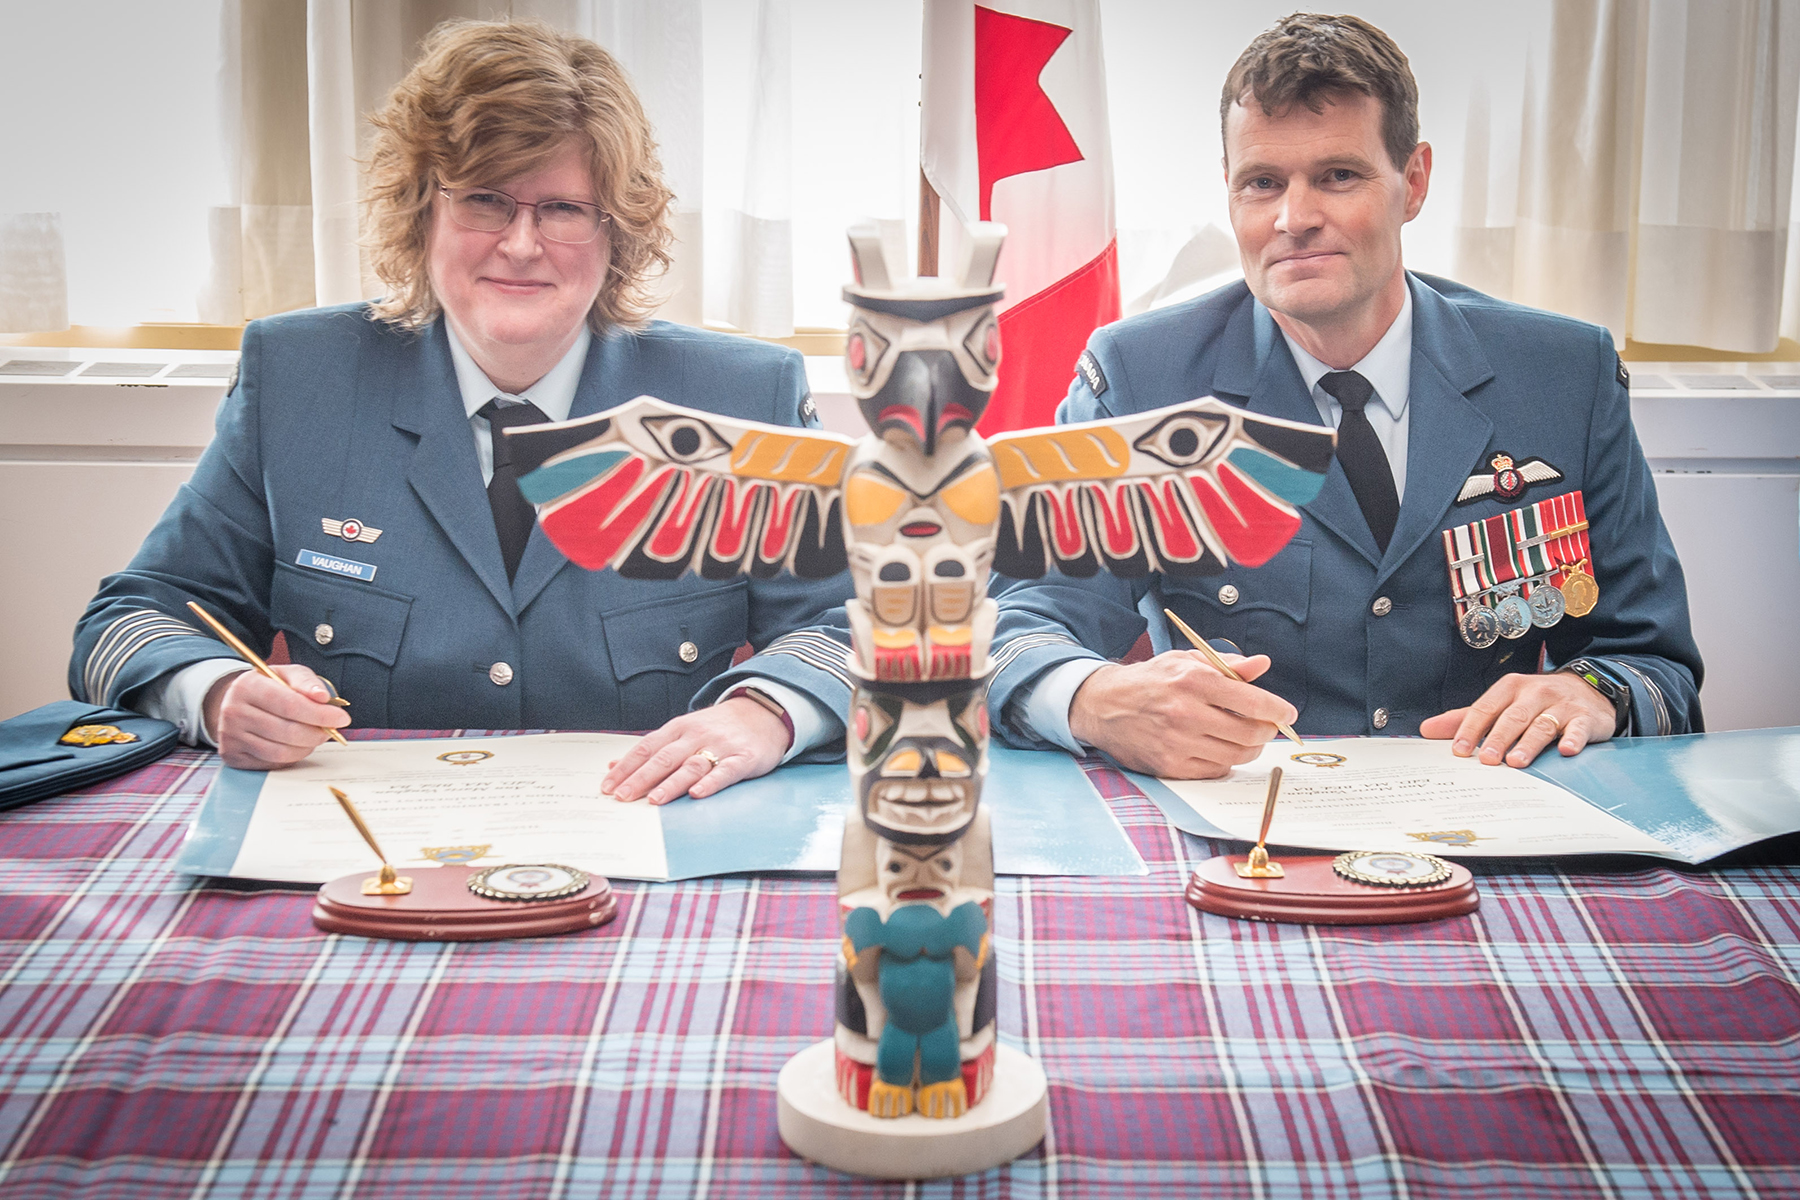 A woman and a man sit a tartan-covered table with documents and a miniature totem pole in front of them and a flag in the background.